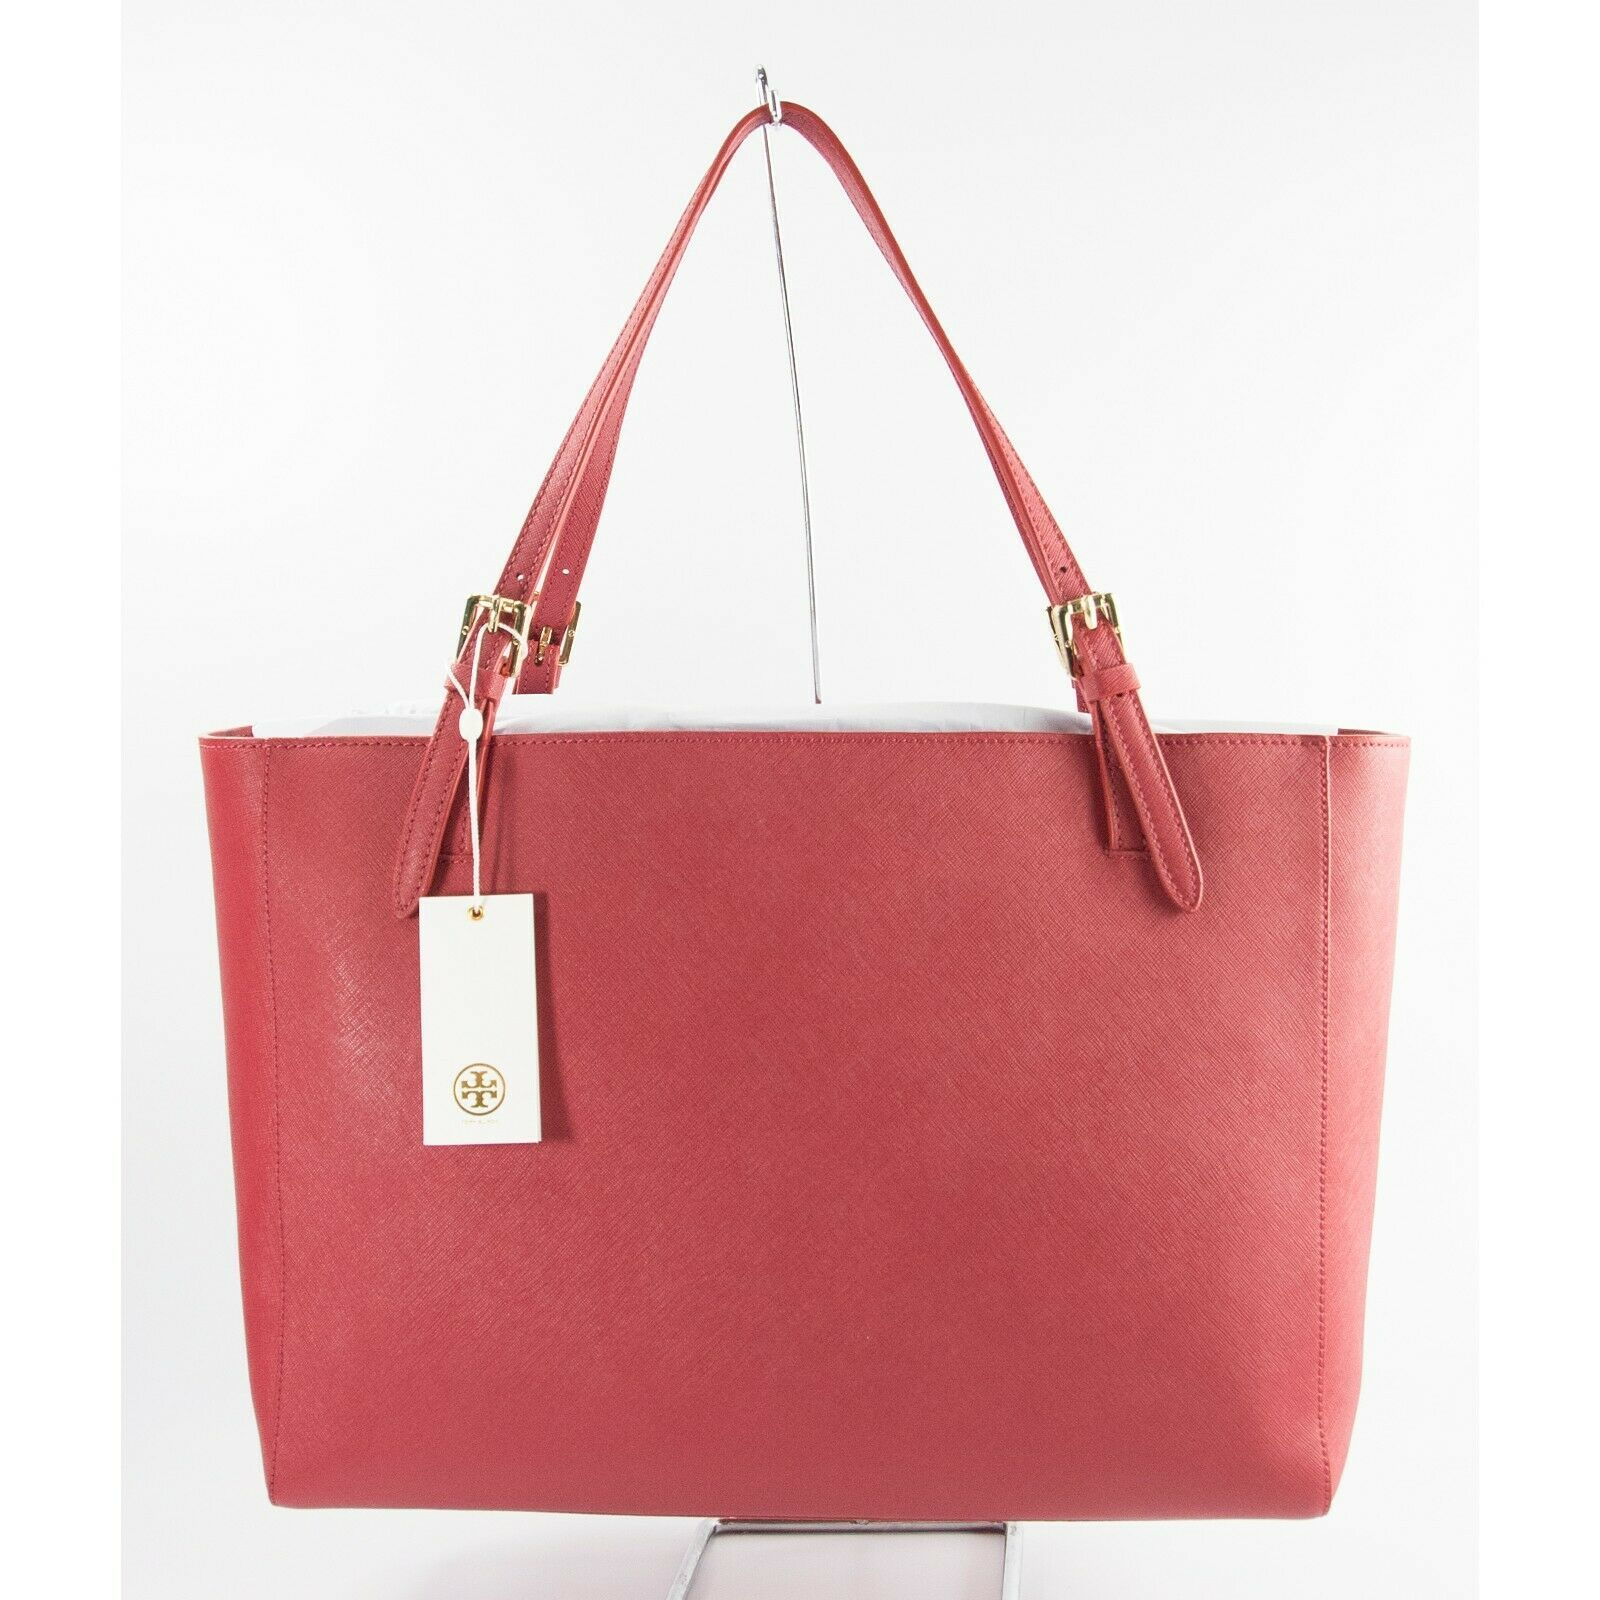 Tory Burch Robinson Kir Royal Red Saffiano Leather York Buckle Tote Bag NWT image 2